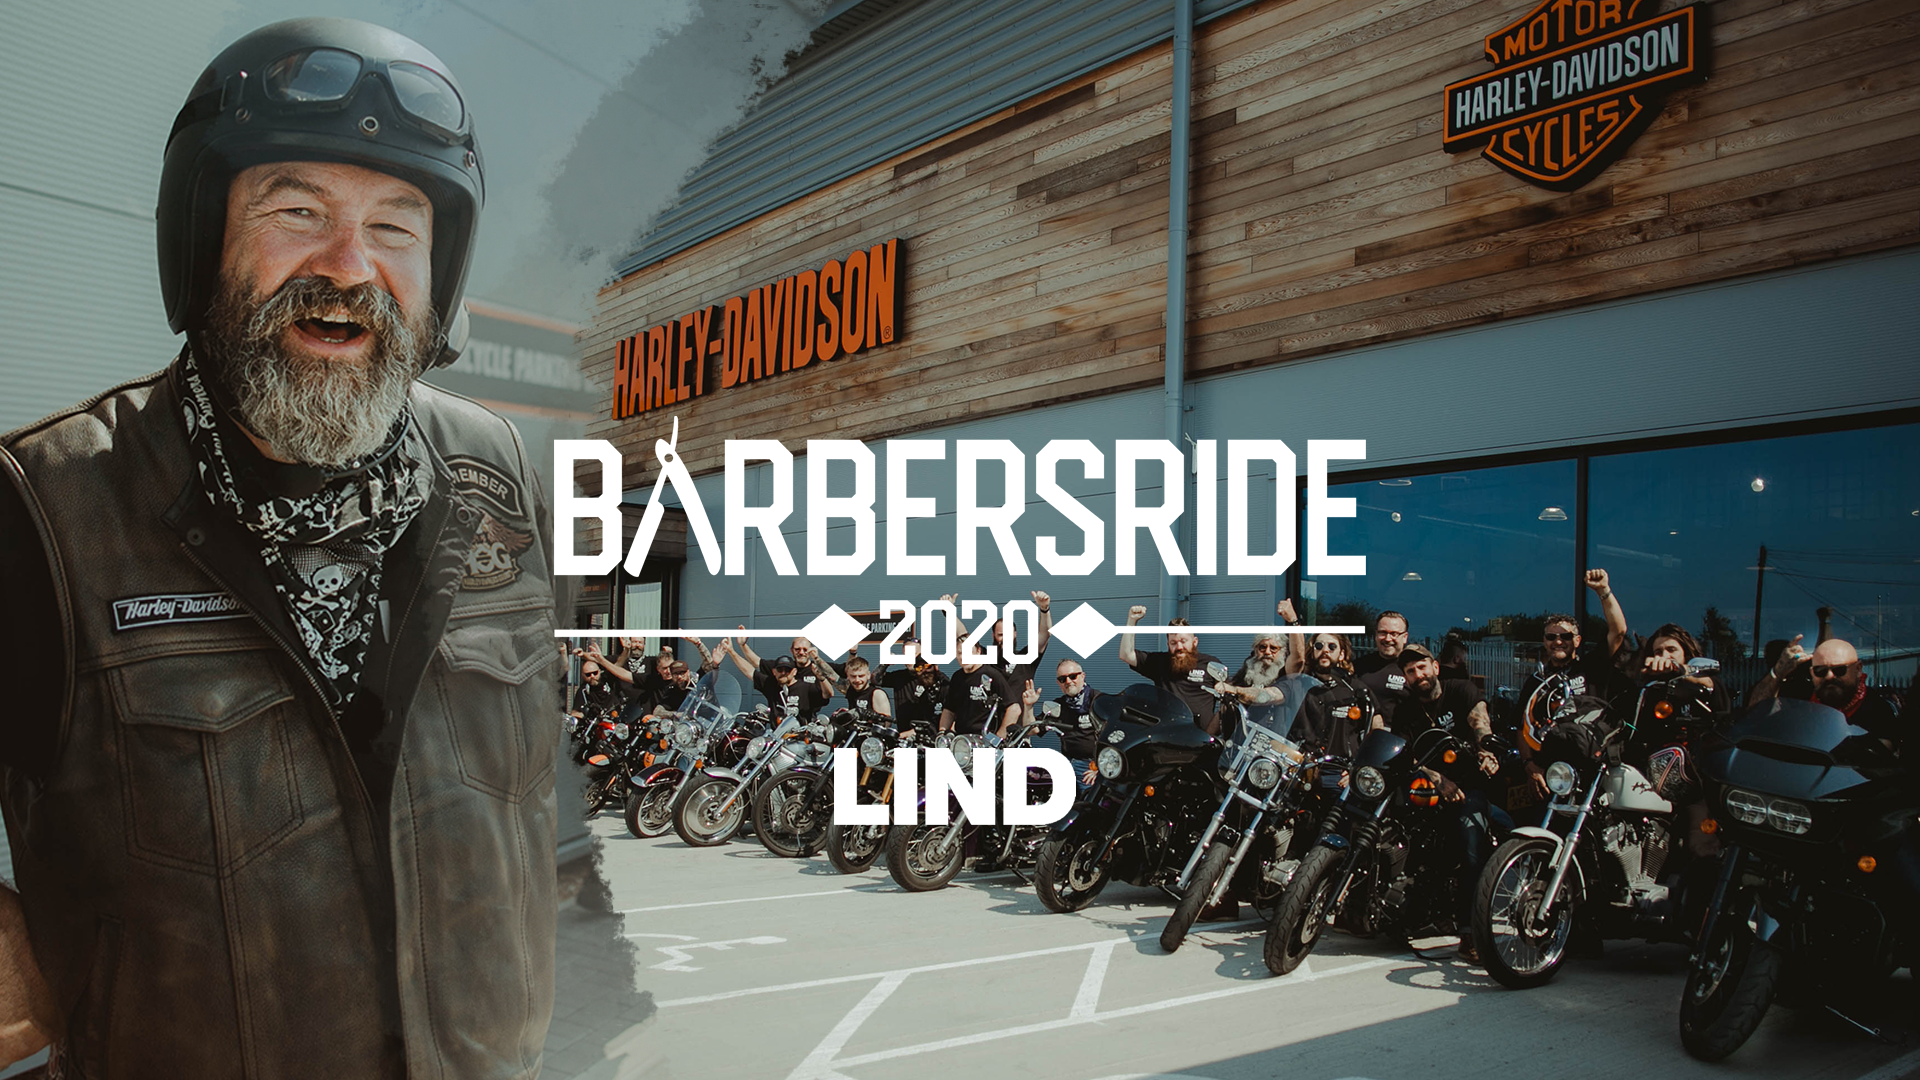 Barbersride 2020 | Proudly supported by LIND